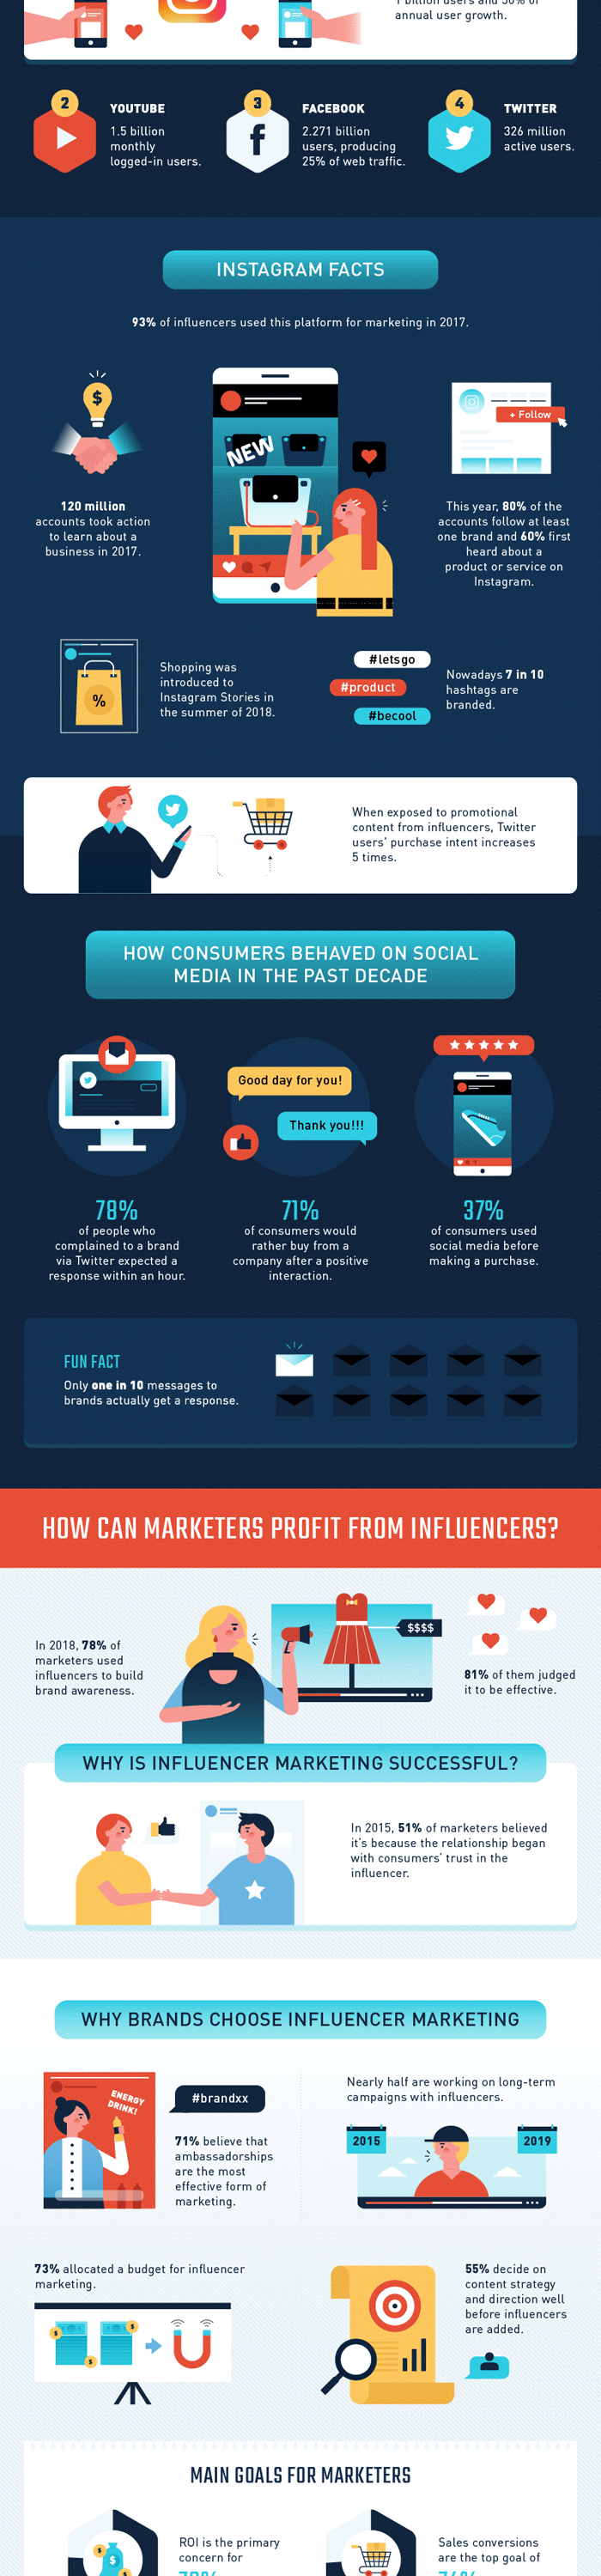 Influencer-marketing2